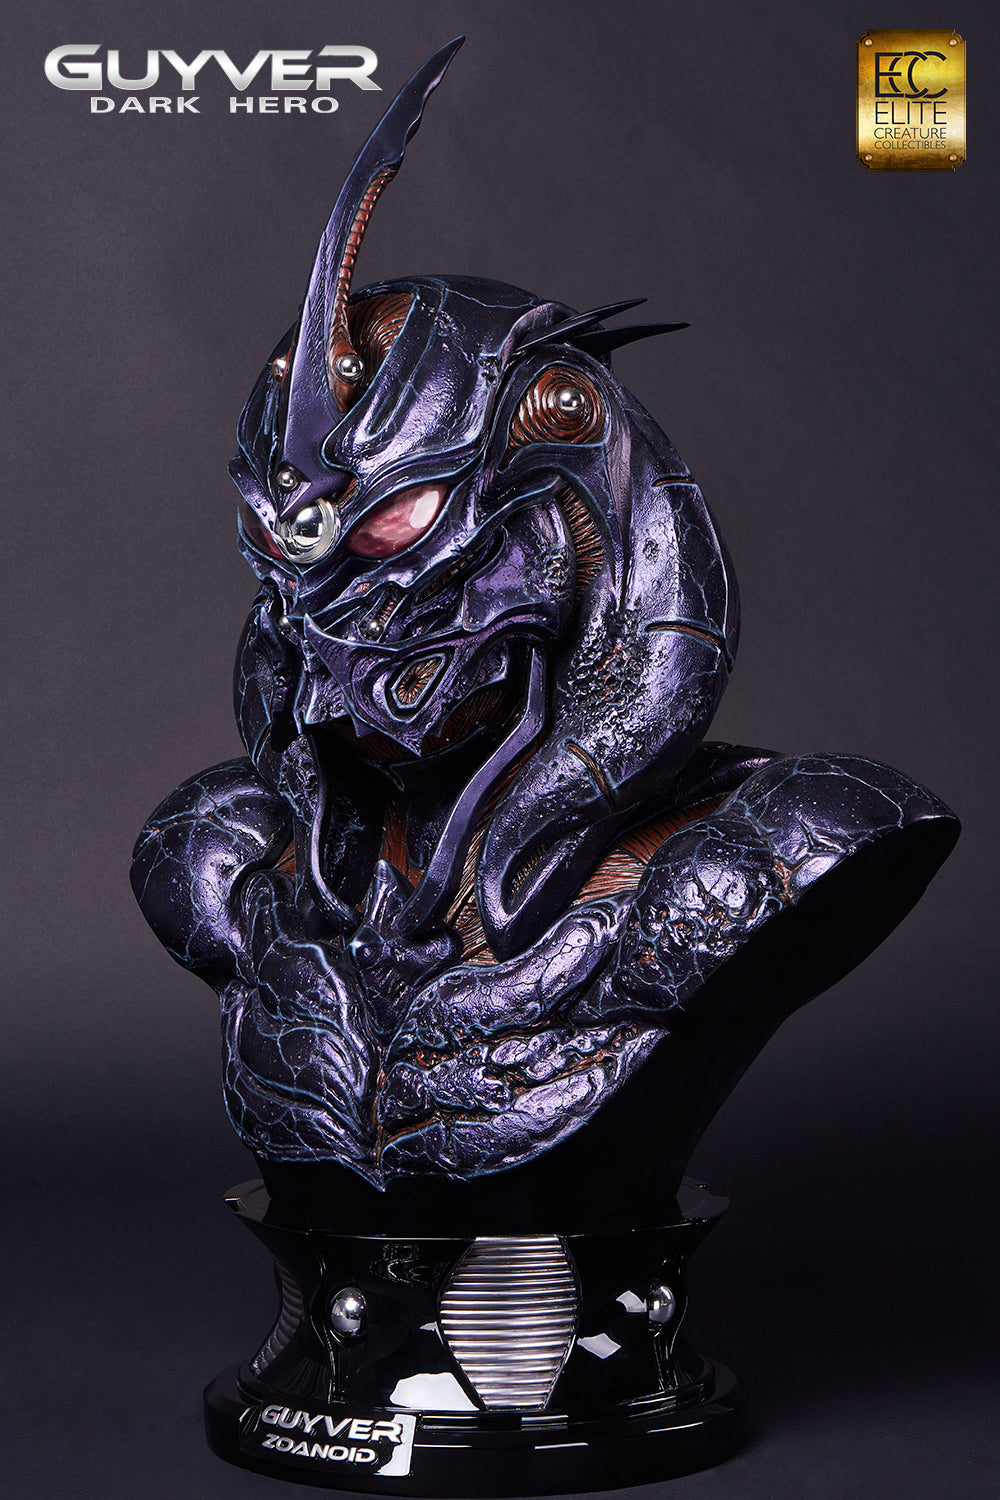 Elite Creature Collectibles - Guyver: Dark Hero - Guyver Zoanoid 1:1 Scale Bust